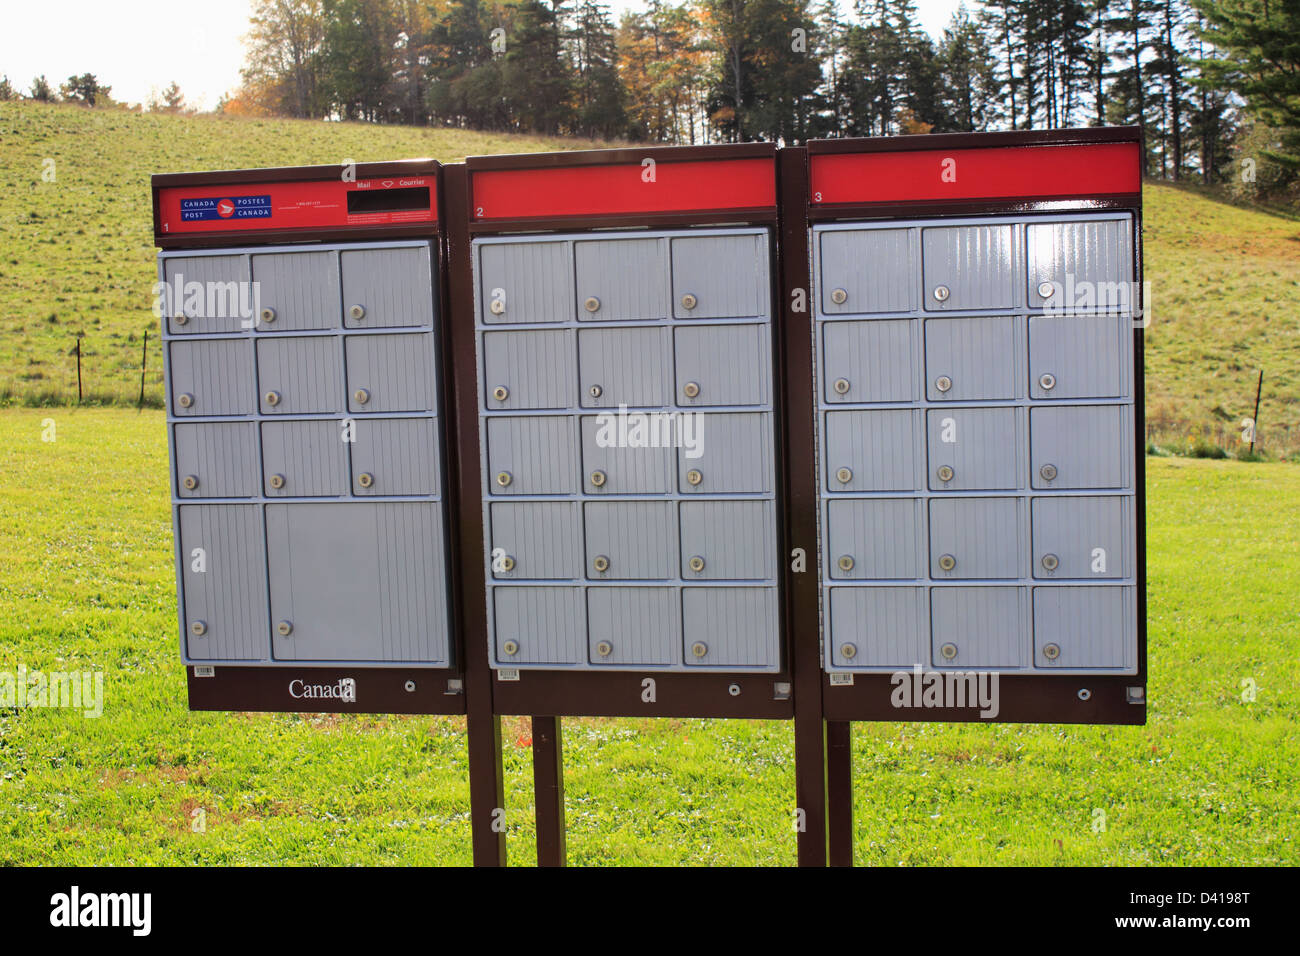 Lock Boxes Stock Photos & Lock Boxes Stock Images - Alamy